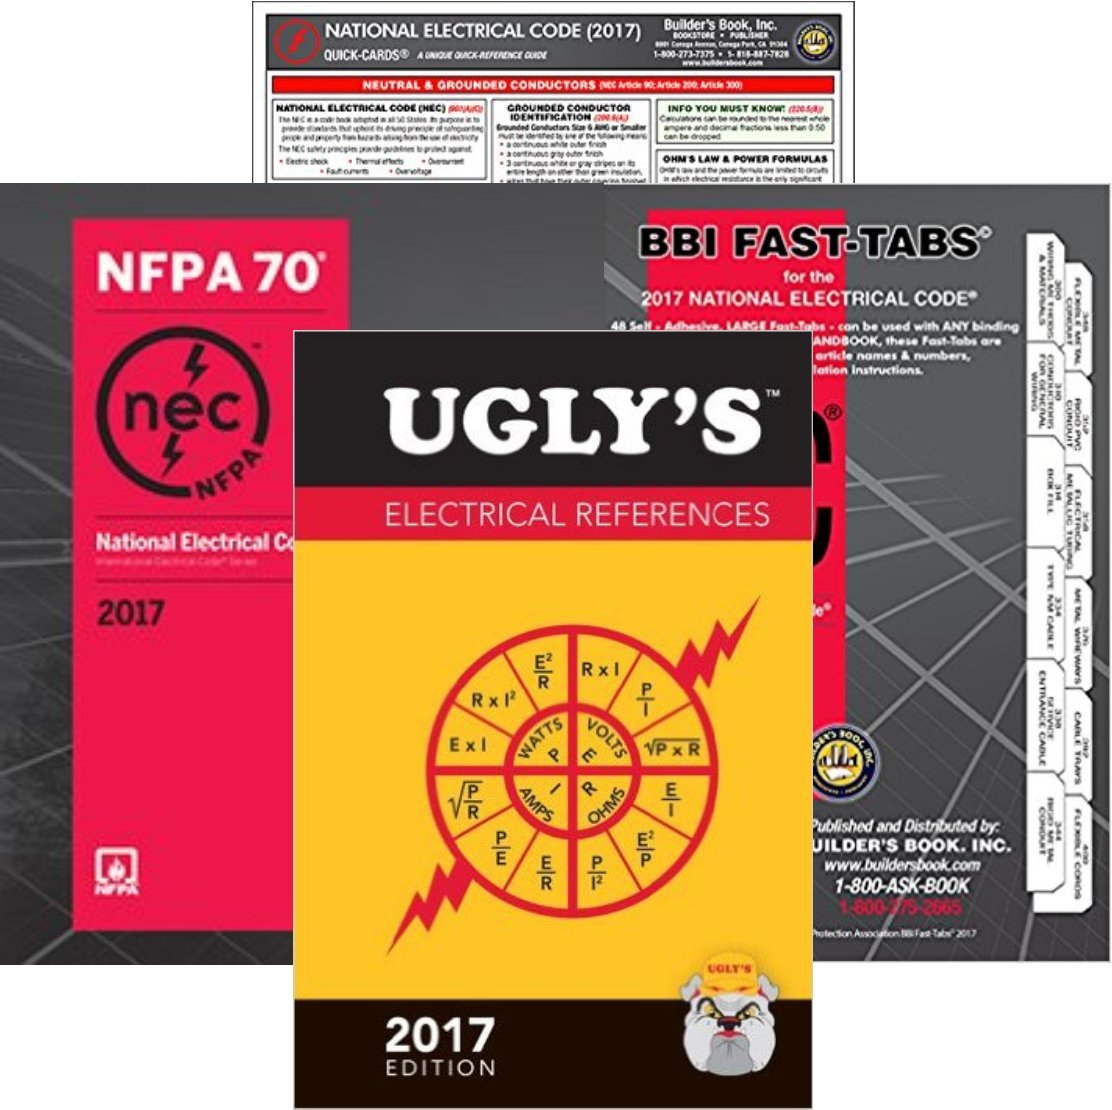 2017 NFPA 70 National Electrical Code, NEC, Paperback, NEC Fast Tabs, Quick Card and Ugly's Electrical References, 2017 Edition, Package